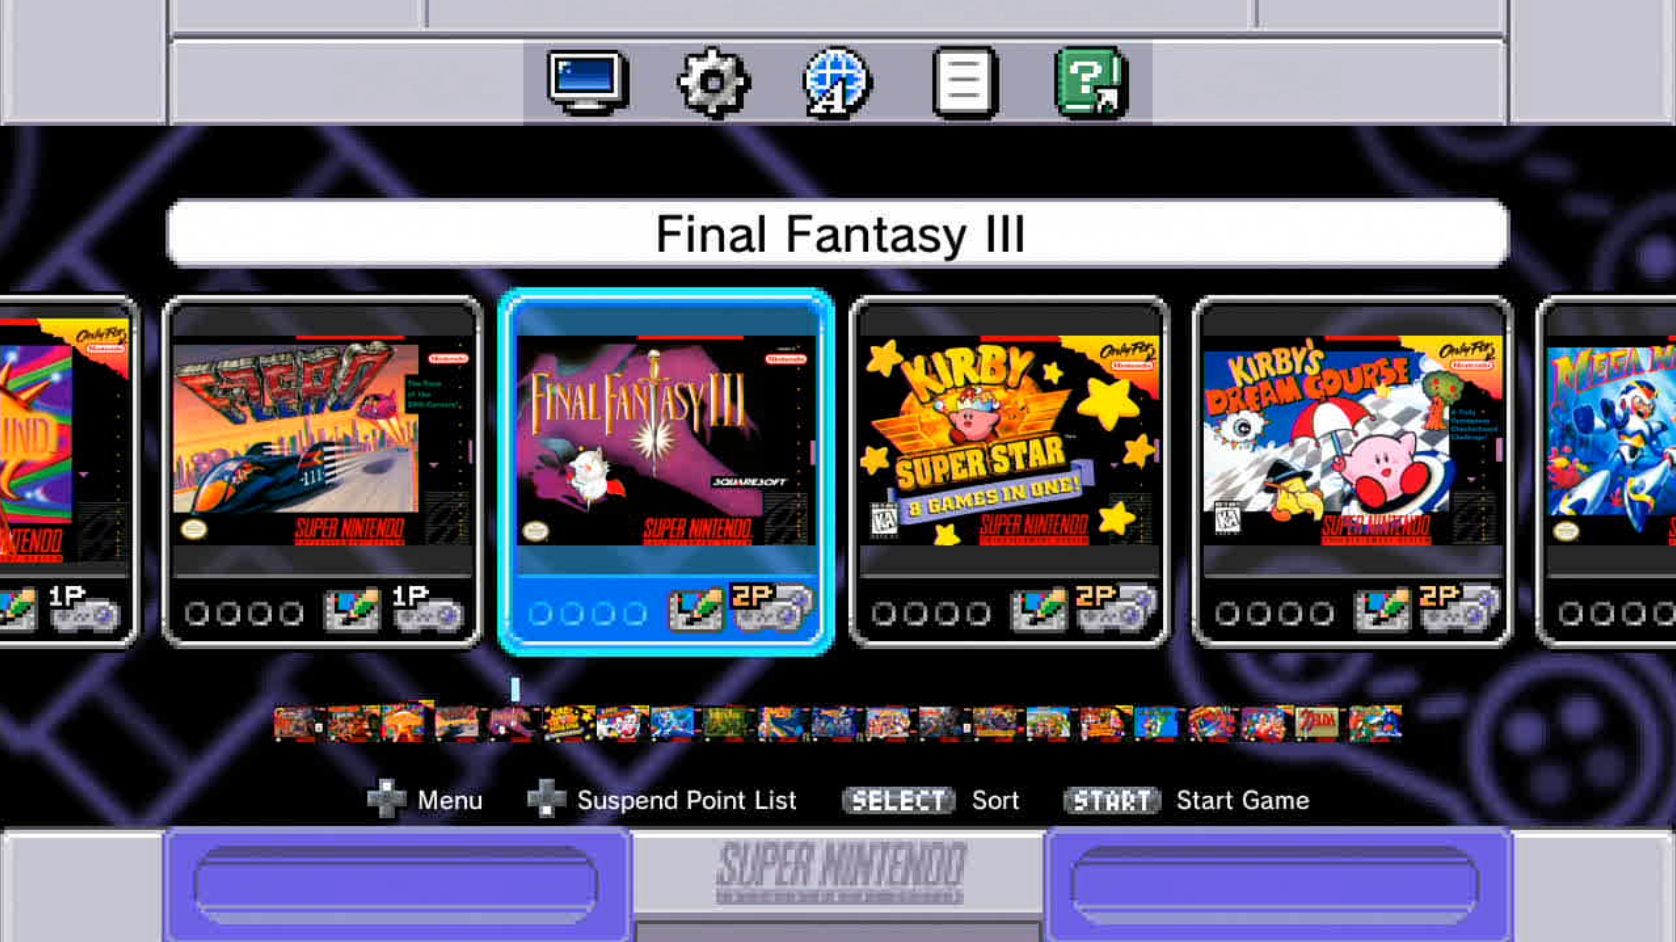 Screenshot of the Super Nintendo Classic Edition's home screen.